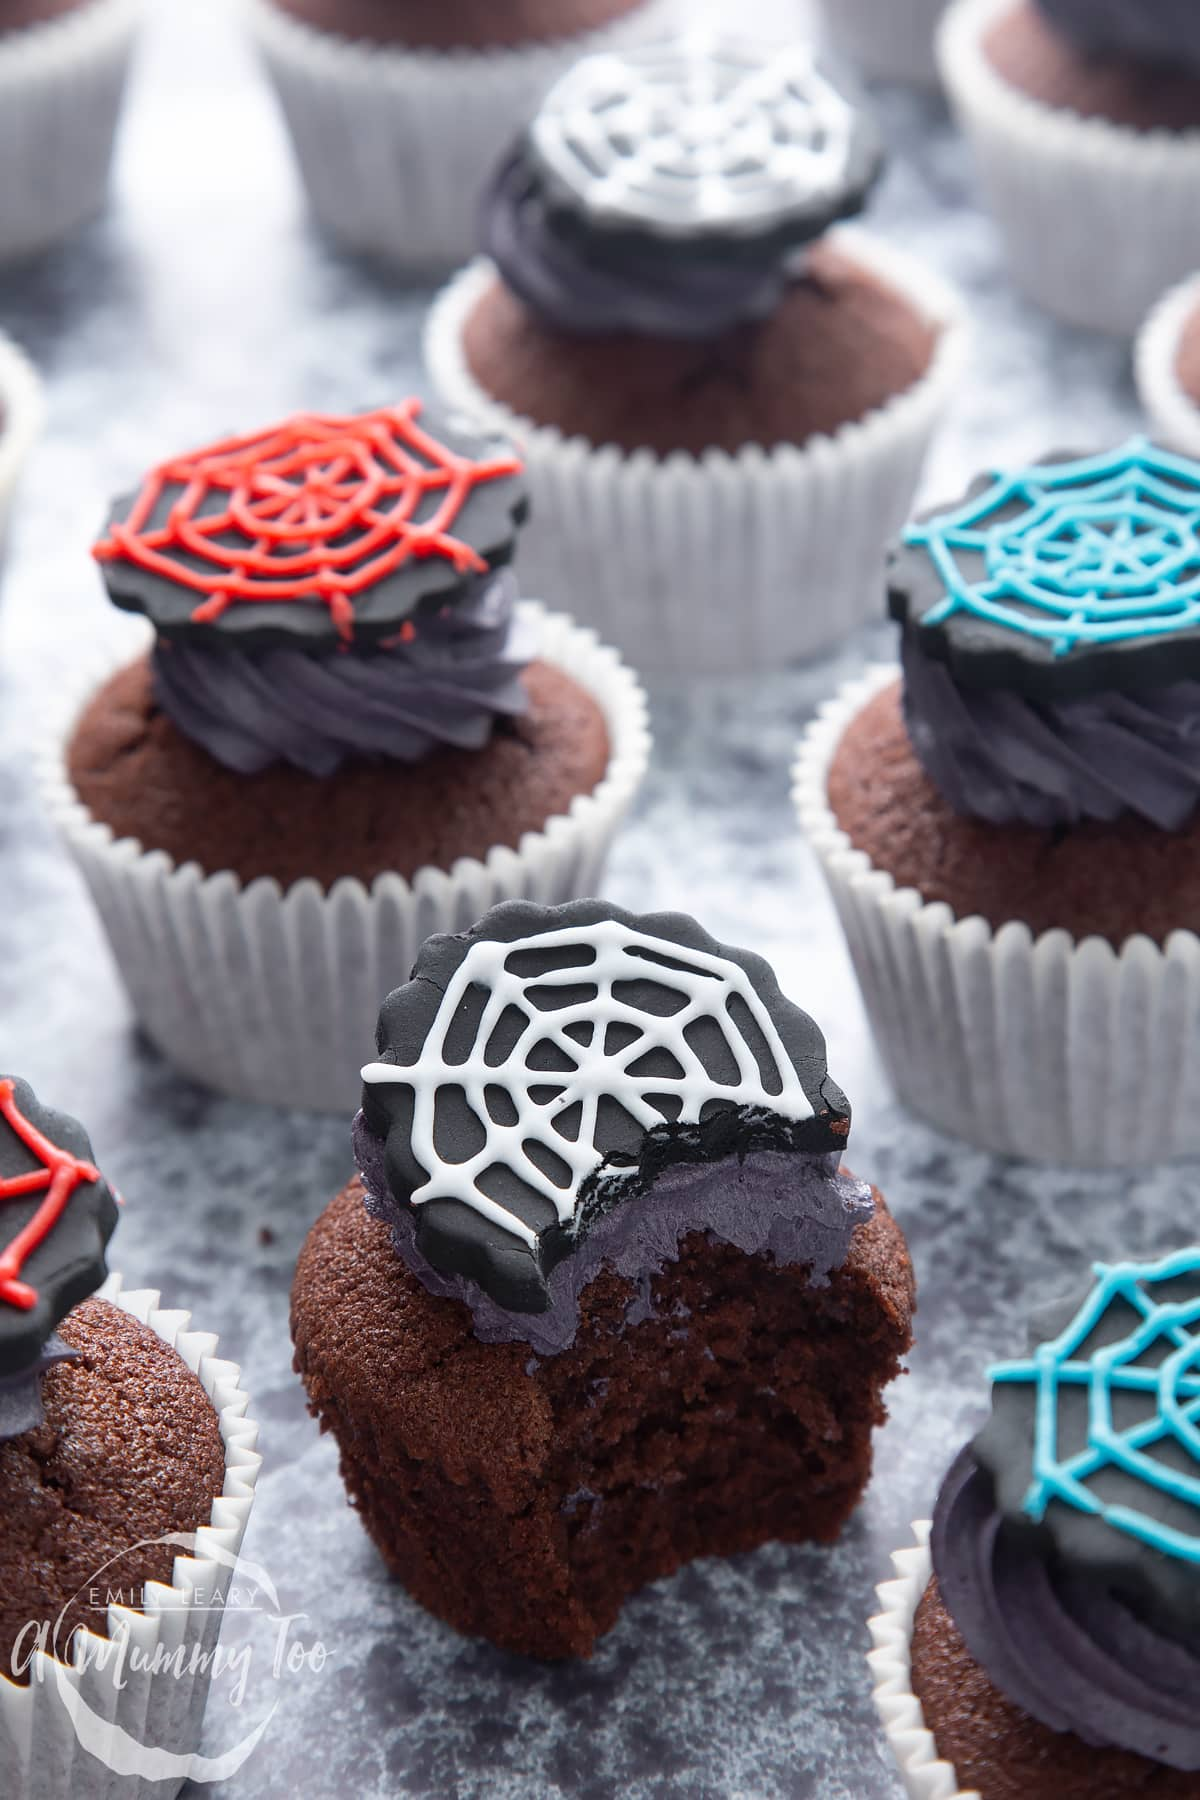 Spider web cupcakes arranged on a black surface. The chocolate sponge cupcakes are topped with purple vanilla buttercream and discs of black sugar paste decorated with spider web icing. One cupcake has been bitten.